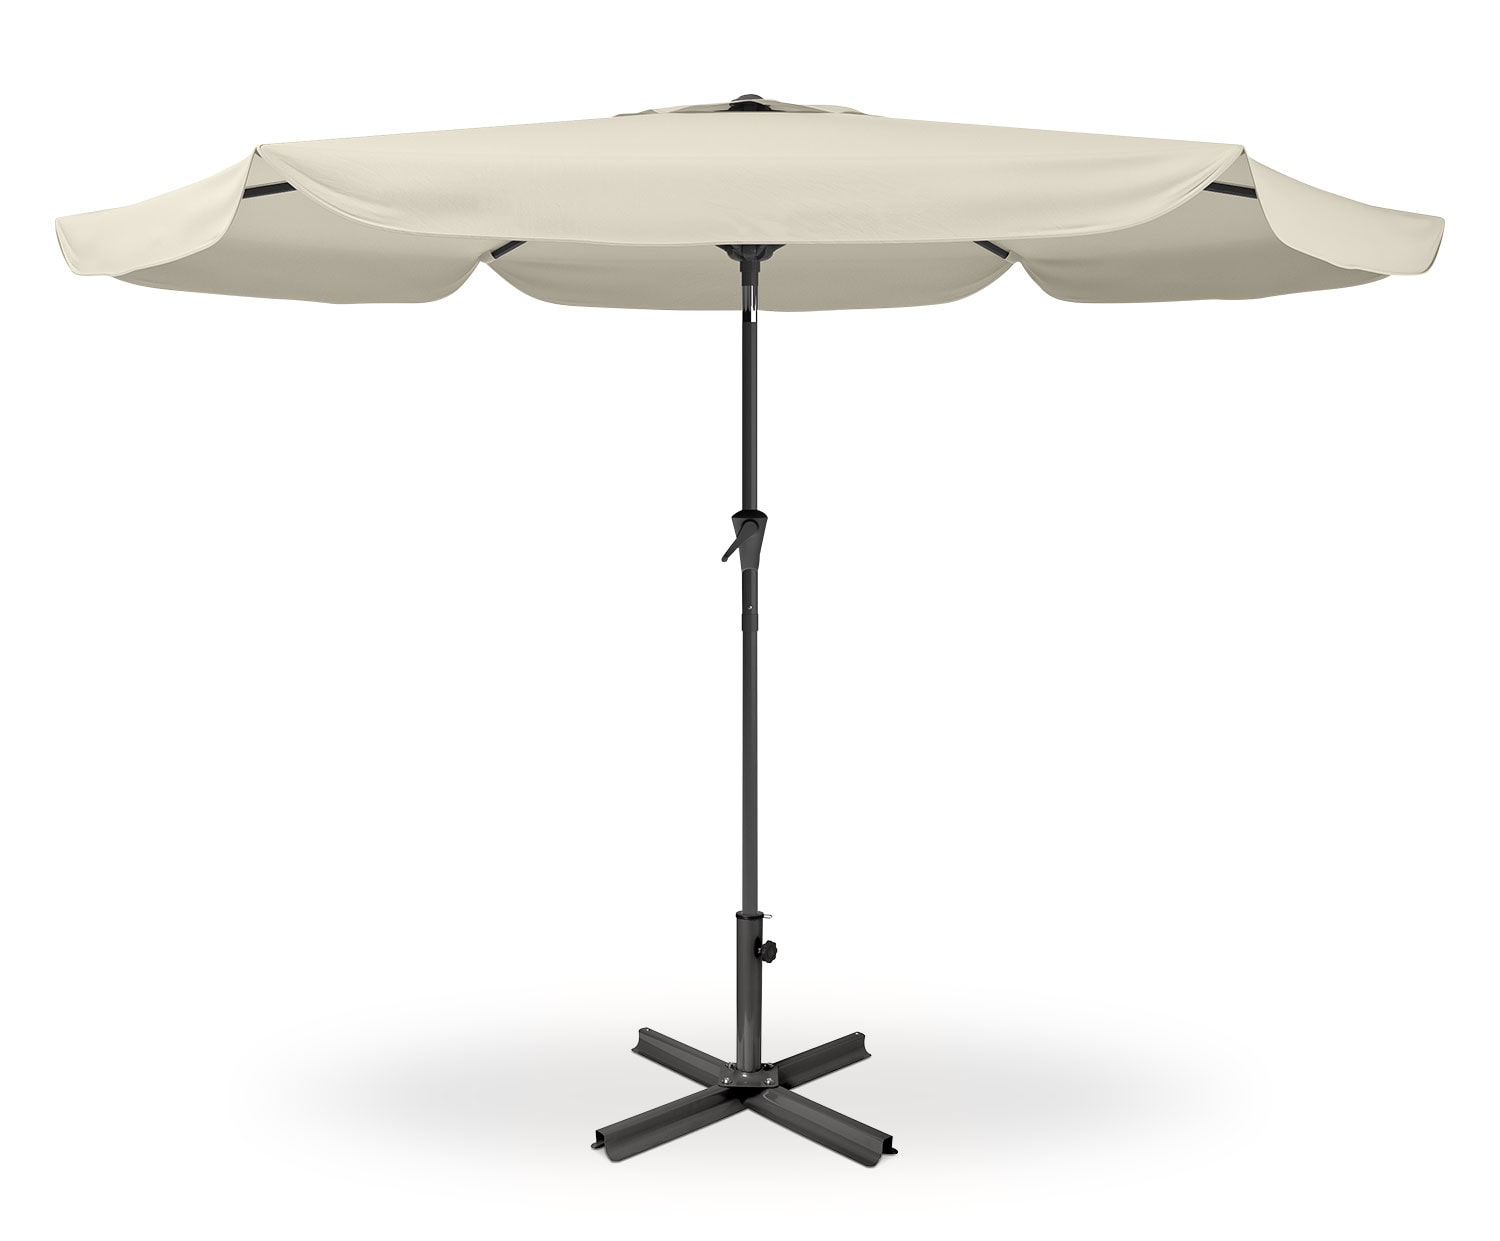 Outdoor Furniture - Culver Patio Umbrella - Warm White